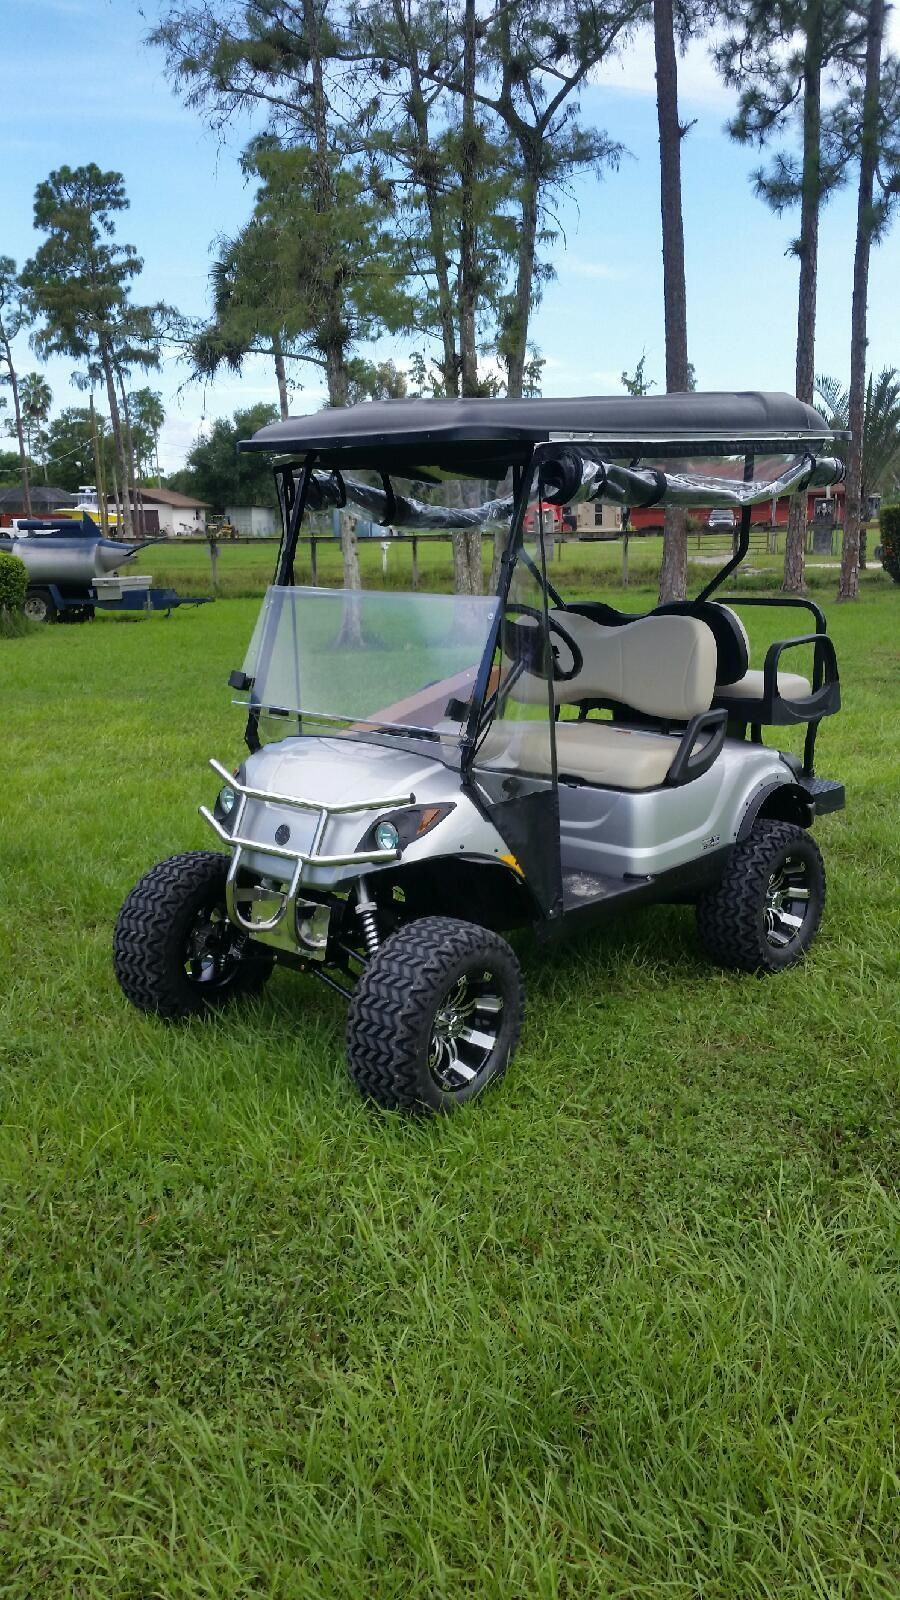 2015 Yamaha Golf Cart | Golf carts for sale | Yamaha golf ... on yamaha gas golf car, 1995 golf cart prices, yamaha g1 golf cart prices, used golf cart prices, yamaha golf carts product, yamaha drive lift kit, 2001 yamaha golf cart prices, ezgo golf cart prices, yamaha golf buggies, harley davidson golf cart prices, yamaha golf cars prices, yamaha drive gas, yamaha gas powered golf carts, ez cart golf cart prices, yamaha gas golf carts lifted, new gas lifted golf carts prices, gas powered golf cart prices, electric golf cart prices, yamaha golf carts by year,